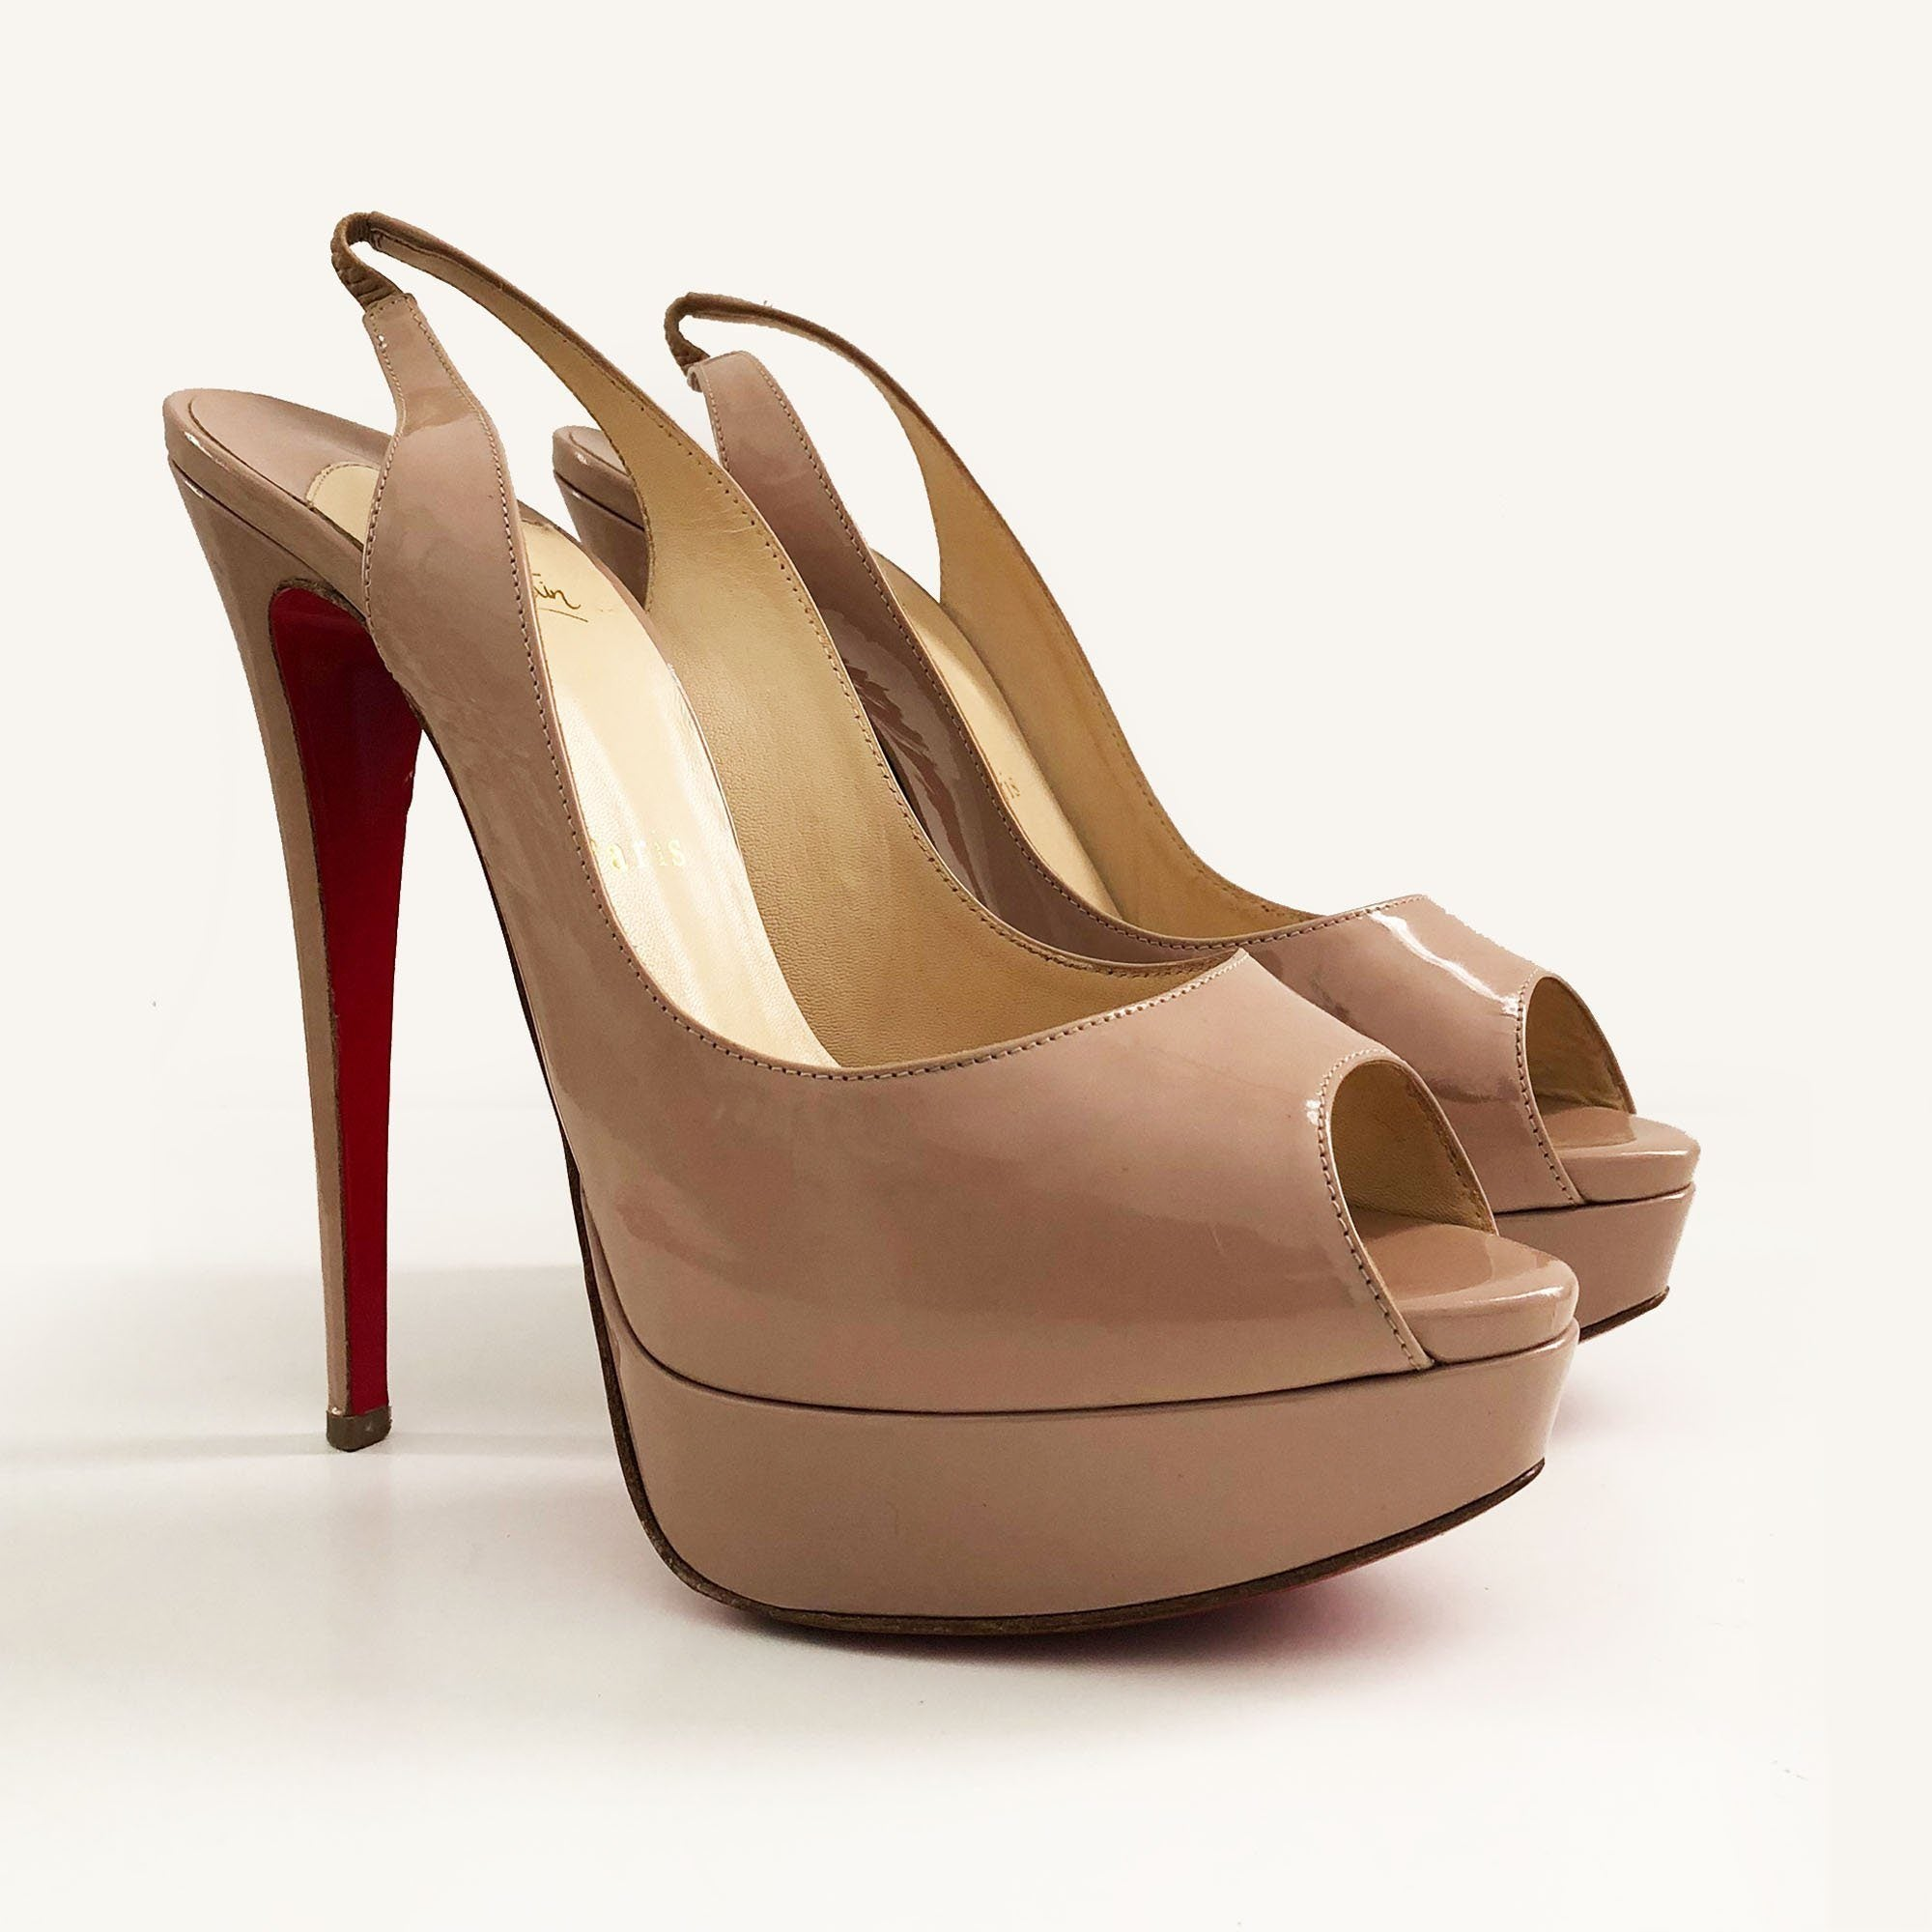 Christian Louboutin Nude Patent Leather Lady Peep Toe Slingback ... bad9060b3c1f